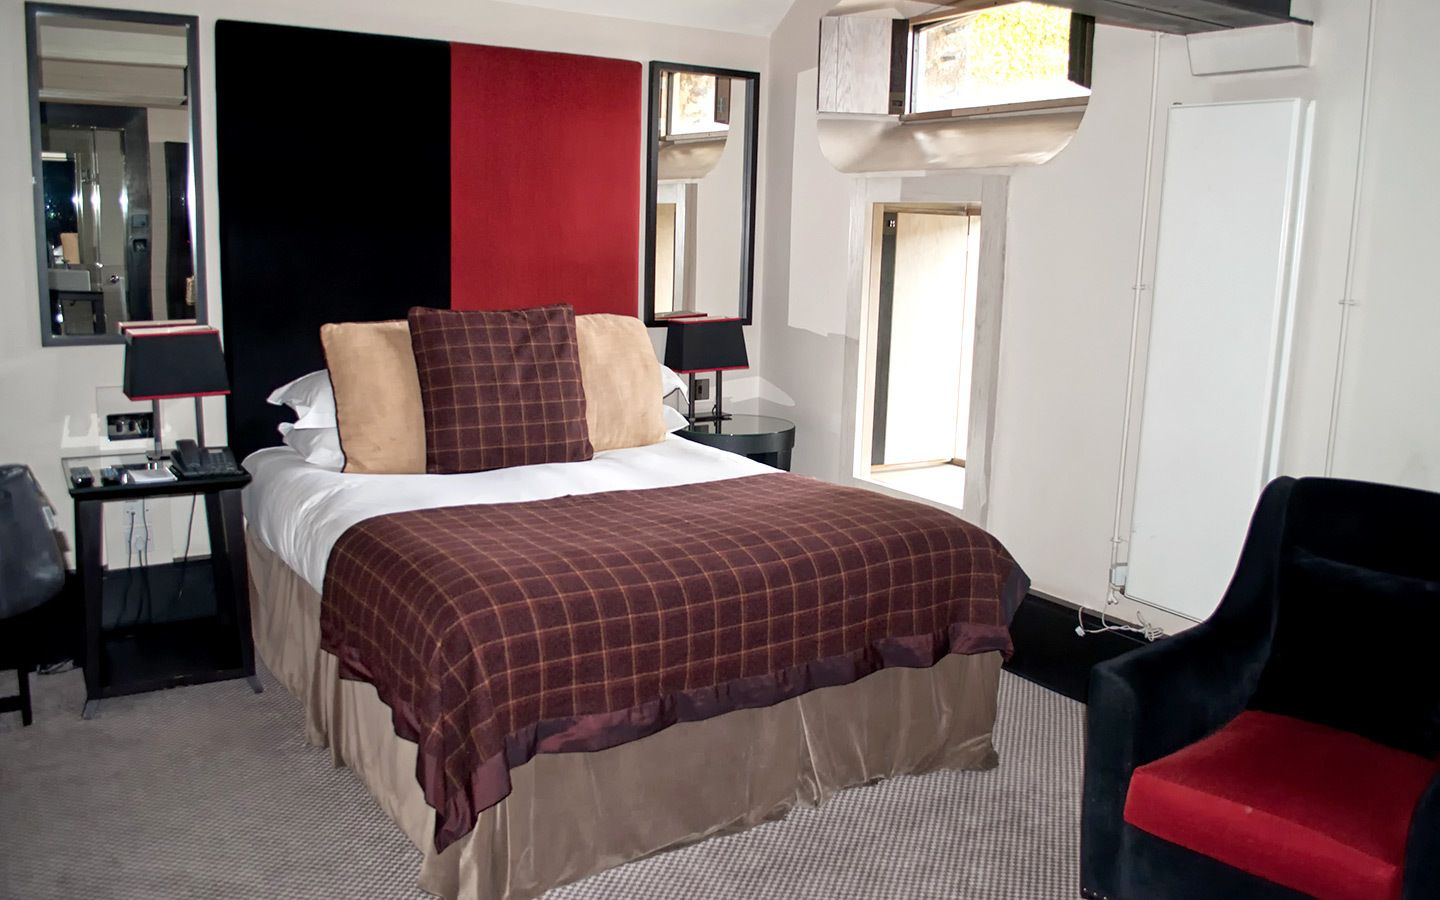 Former prison cell rooms at the Malmaison Oxford hotel